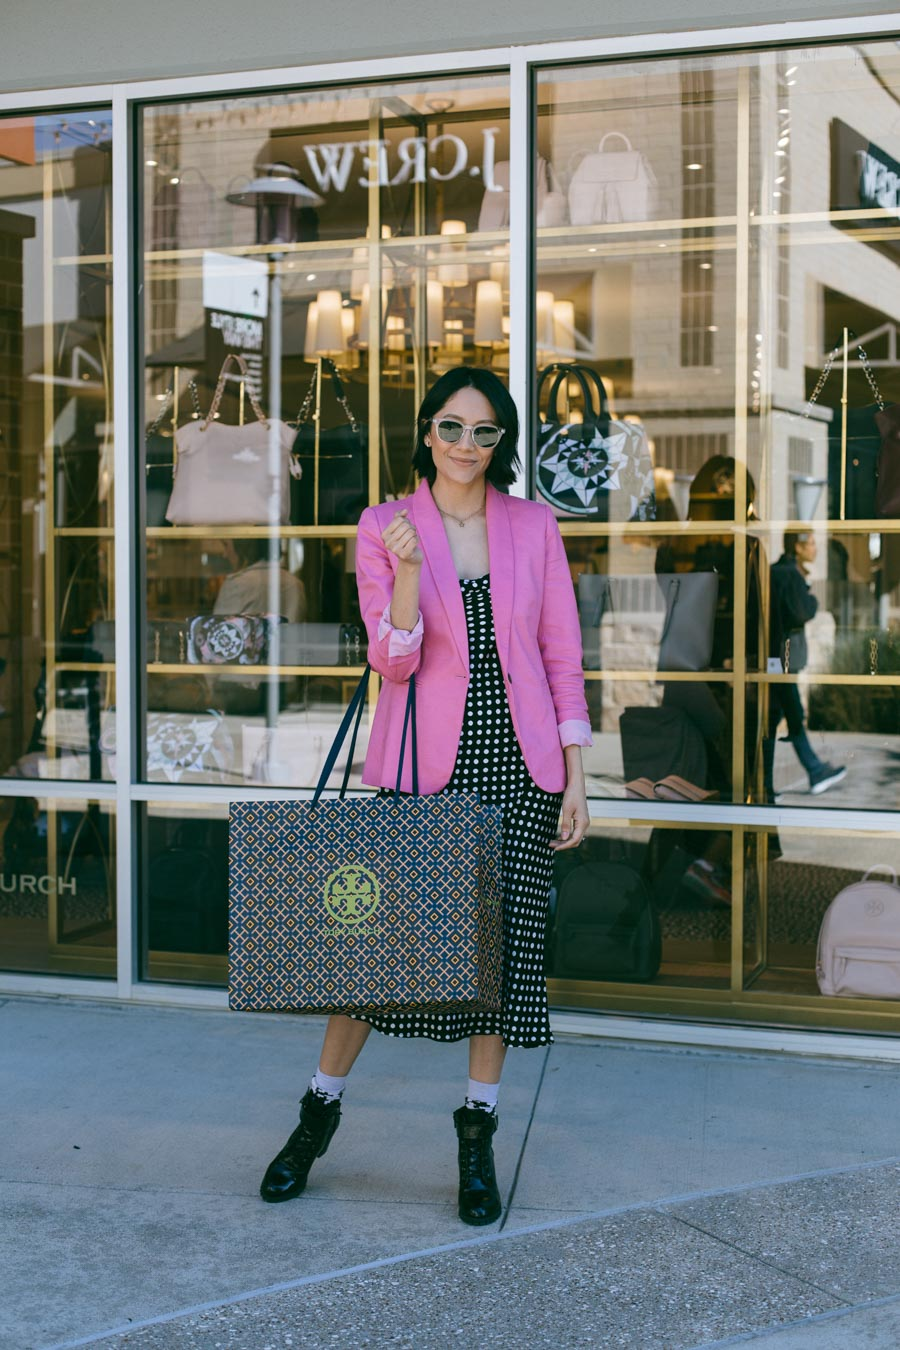 Houston blogger Lilly Beltran shops at the Tory Burch outlet store.